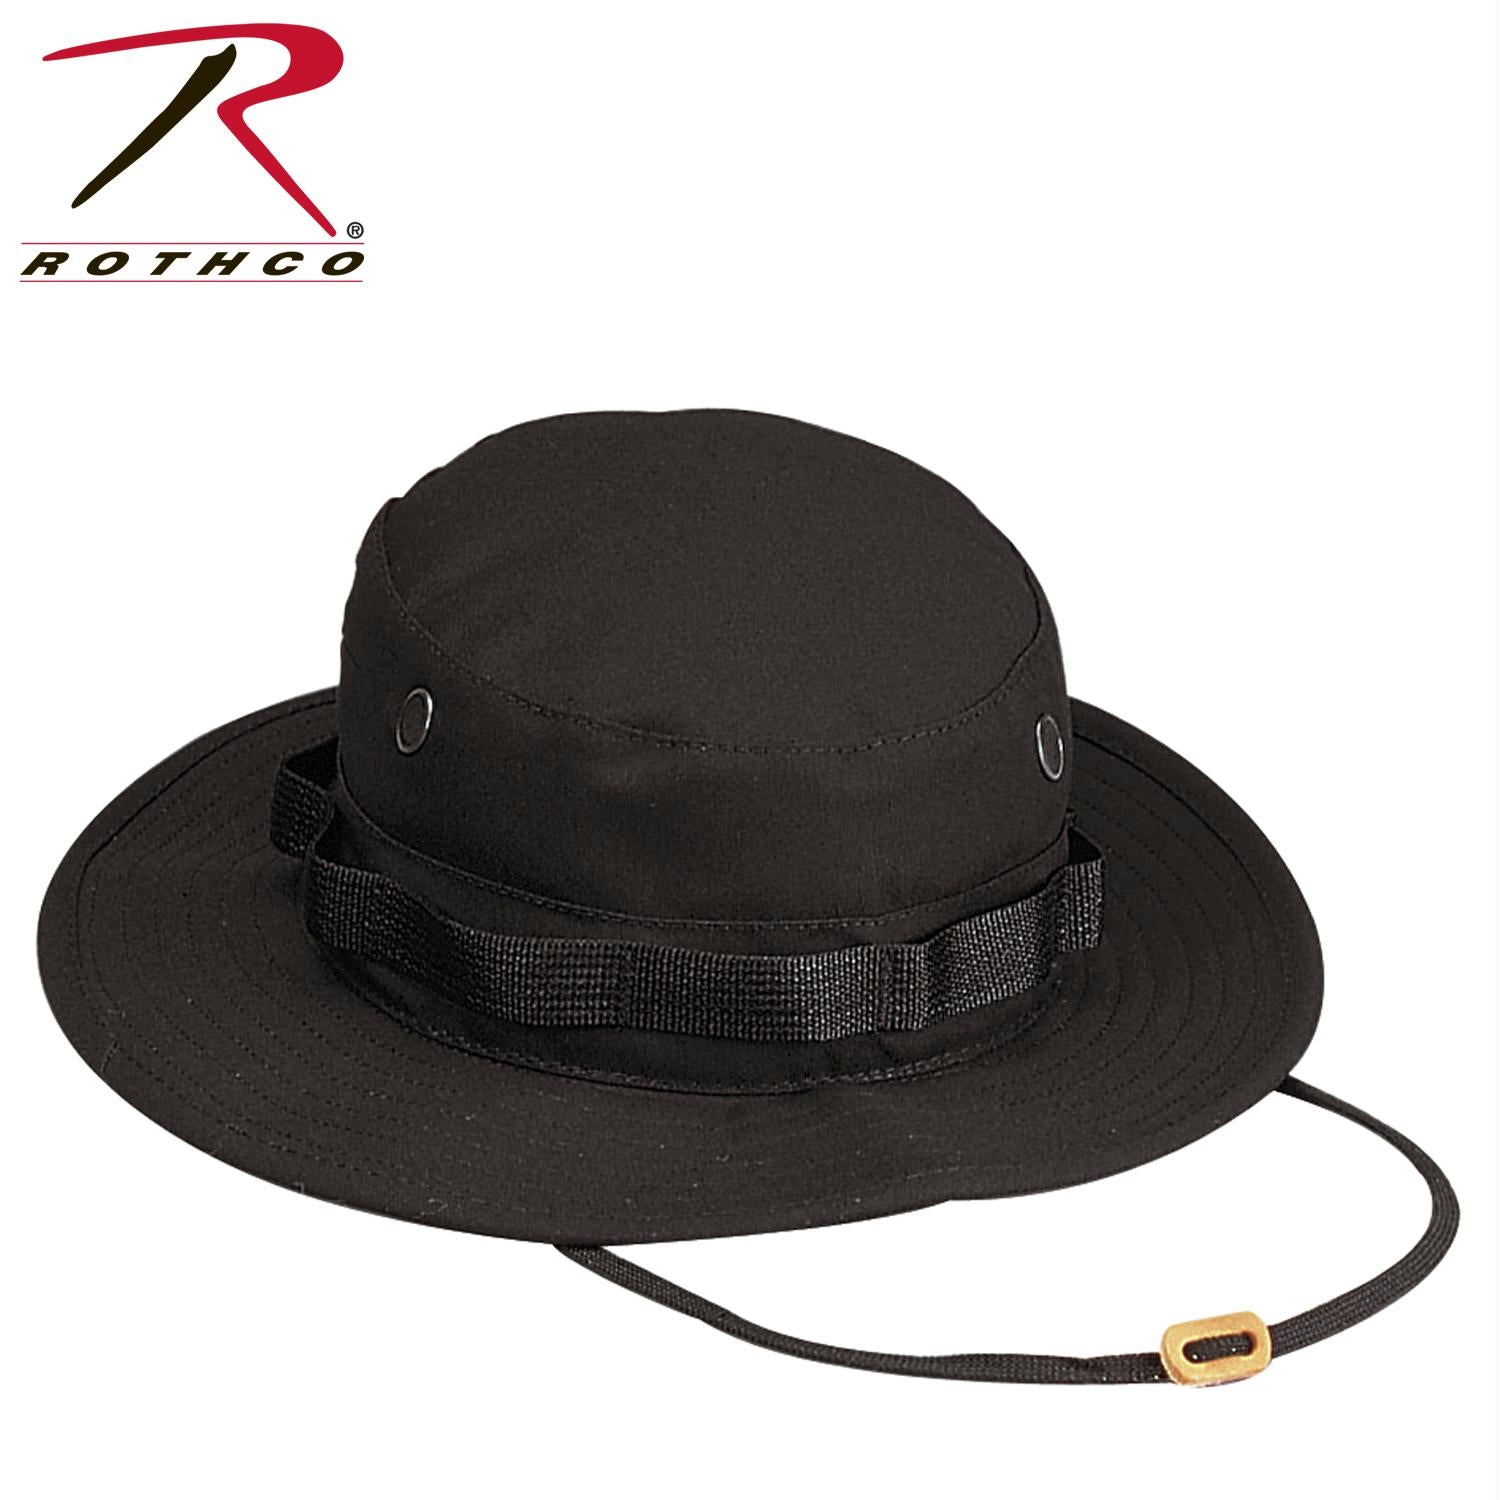 Rothco 100% Cotton Rip-Stop Boonie Hat - Black / 7 3/4